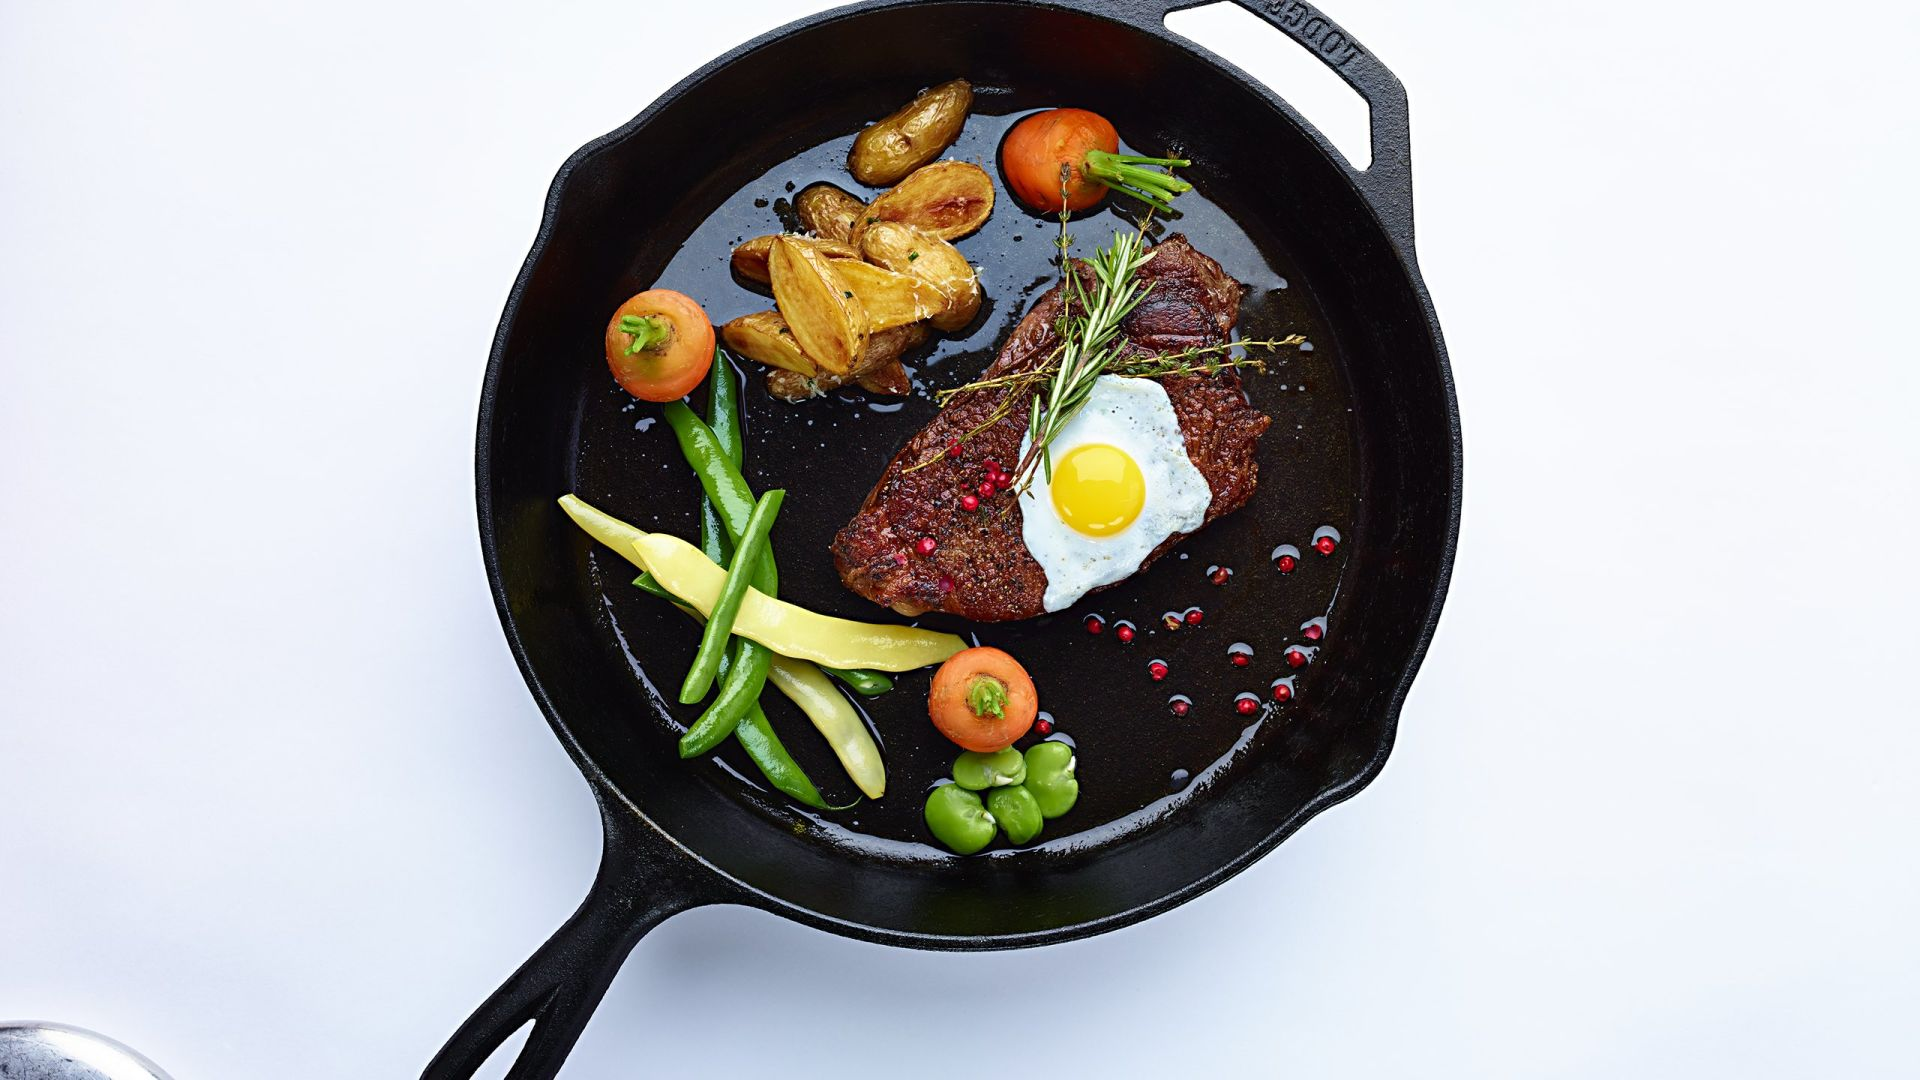 Filete y huevos a la sartén | Catering de comidas y bebidas | Loews Hotels & Resorts